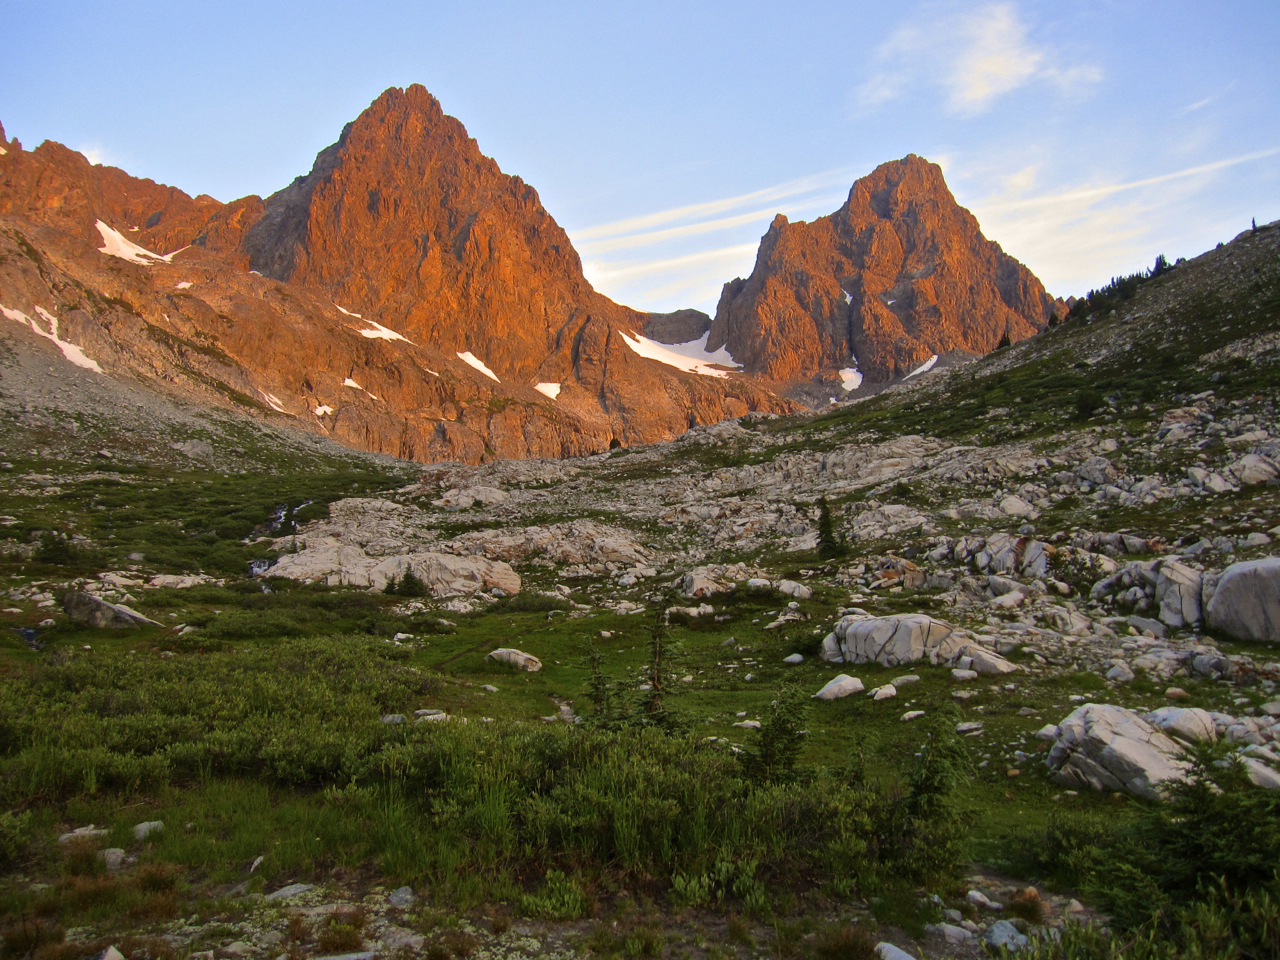 Morning alpenglow on Mount Ritter (left) and Banner Peak (right).